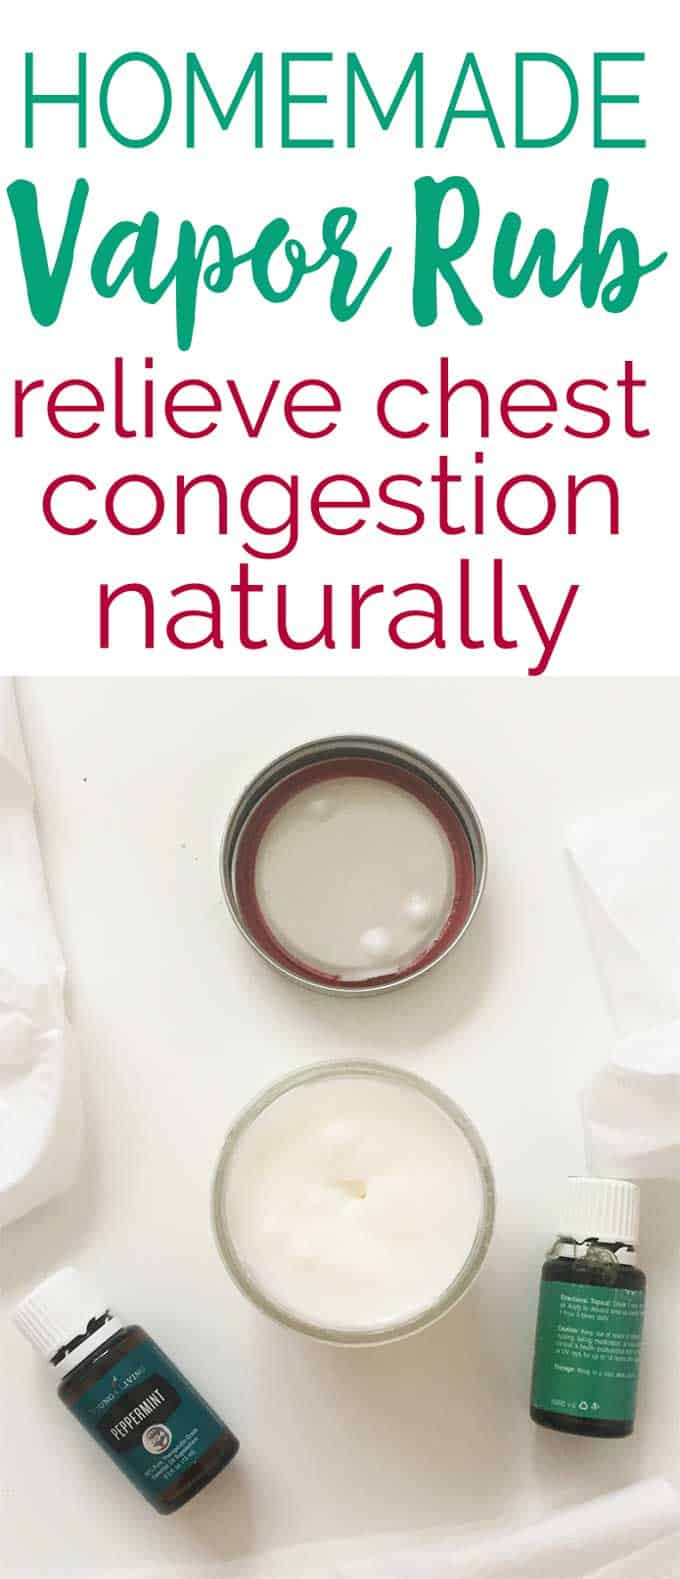 Relieve chest congestion naturally with homemade vapor rub menthol chest ointment made with coconut oil and essential oils.